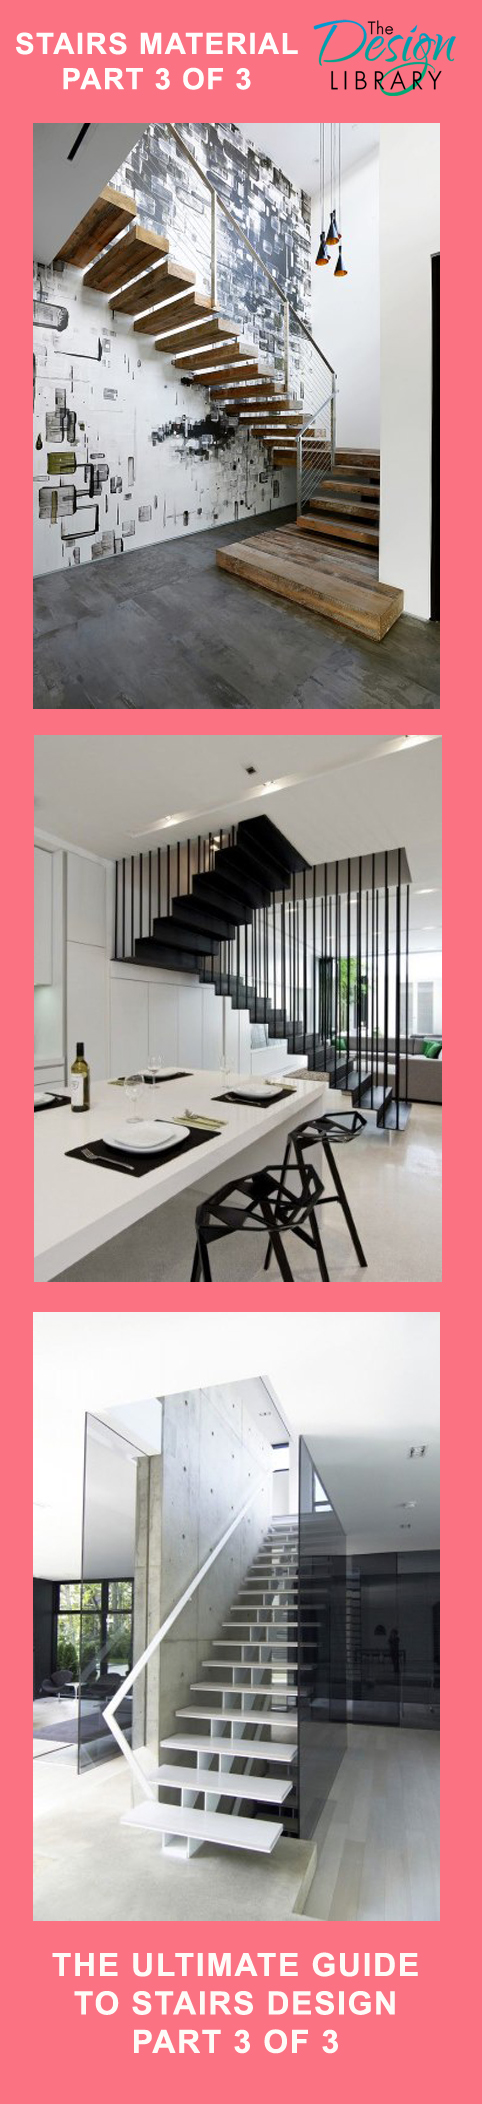 The ultimate guide to stairs stairs material part 3 of 3 for Apartment design guide part 3